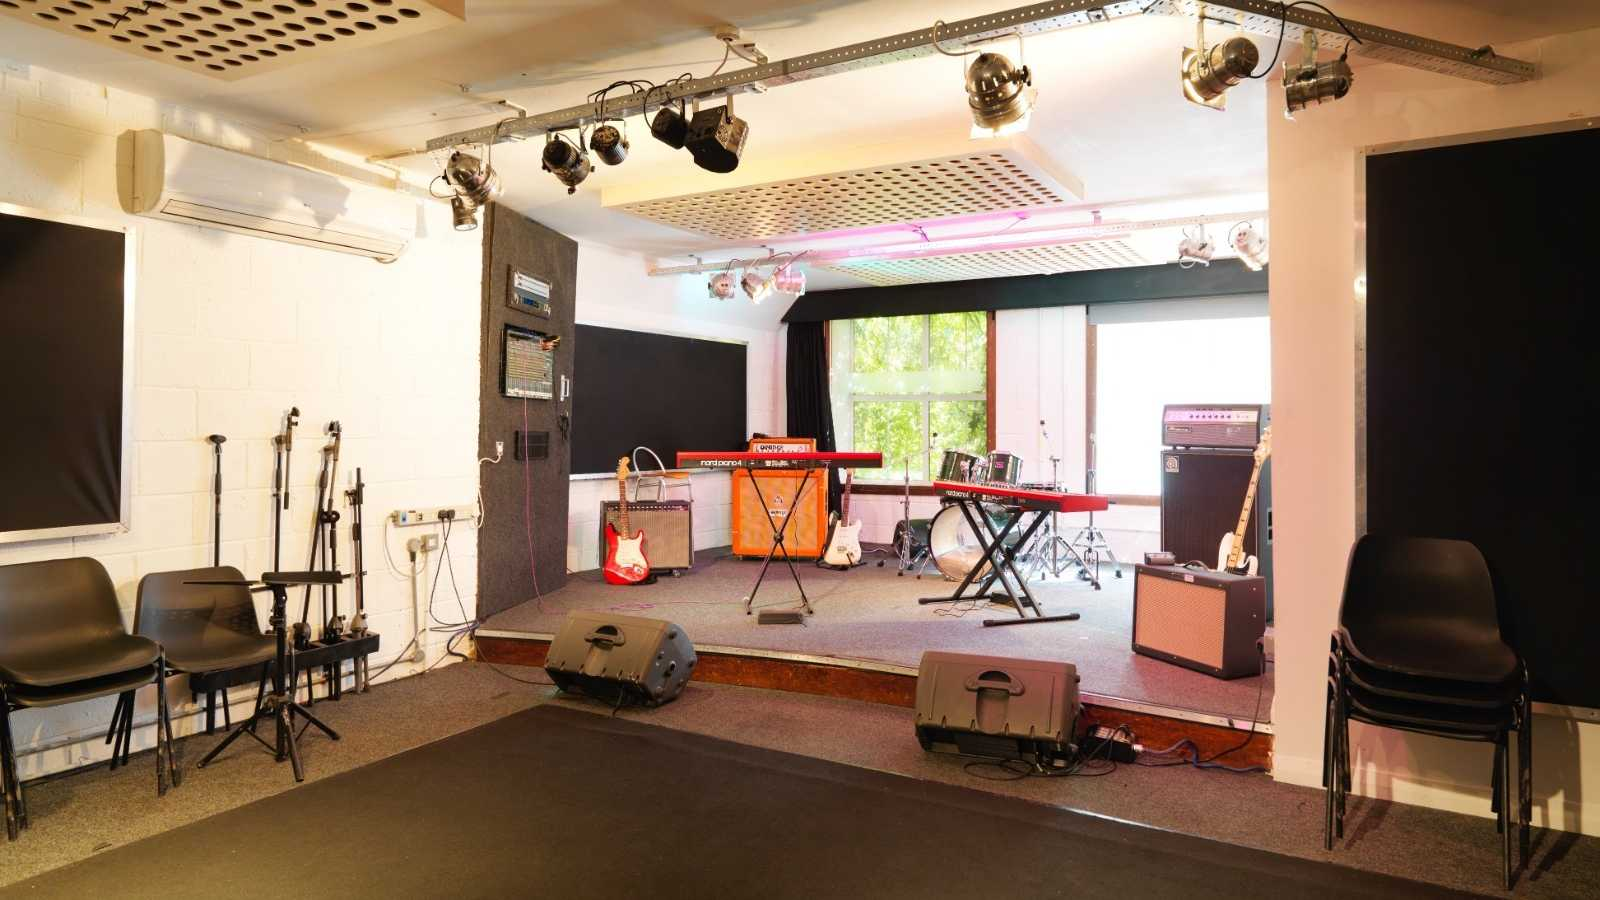 Premises studio 2 - Dry hire only (backline & pianos cost extra)